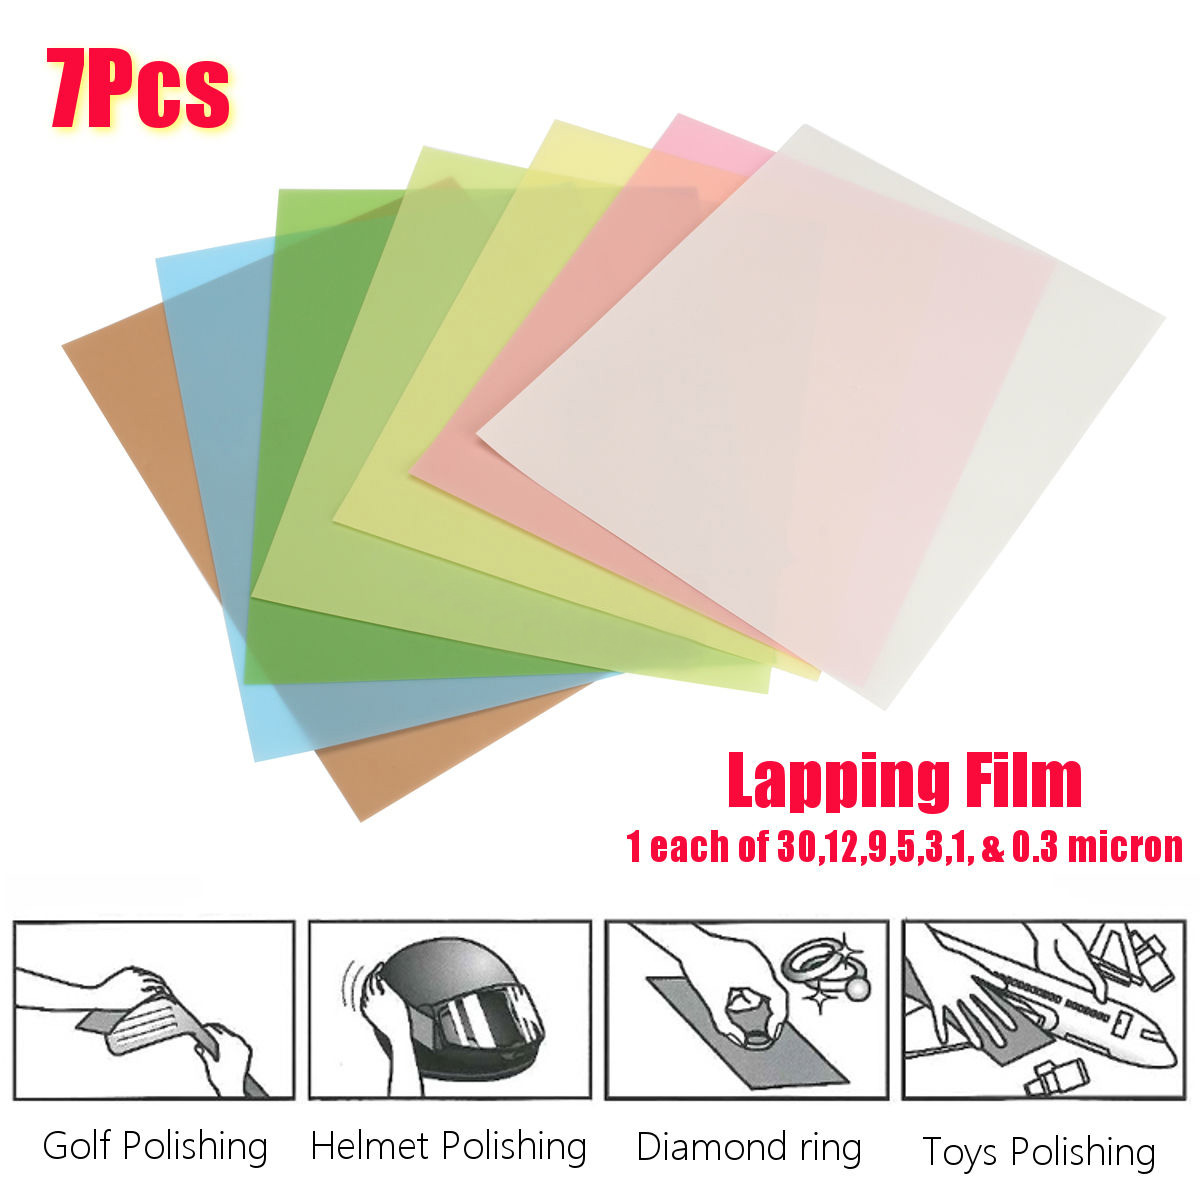 7pcs 8.7\\\\\\\'\\\\\\\'x11\\\\\\\'\\\\\\\' Plastic Lapping Film Sheets 30,12,9,5,3,1,0.3 Water Resistant